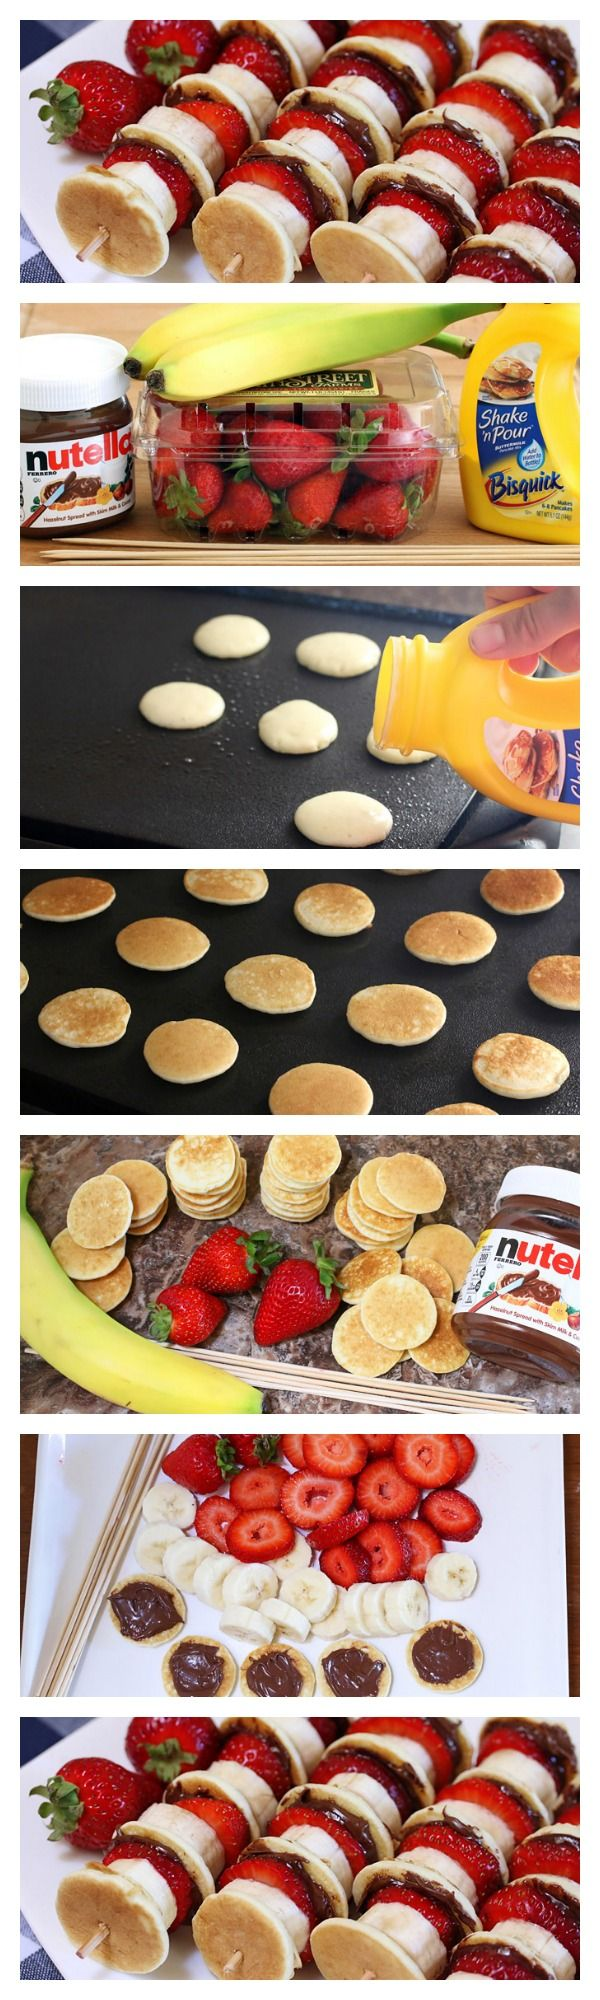 Pancakes met nutella en fruit